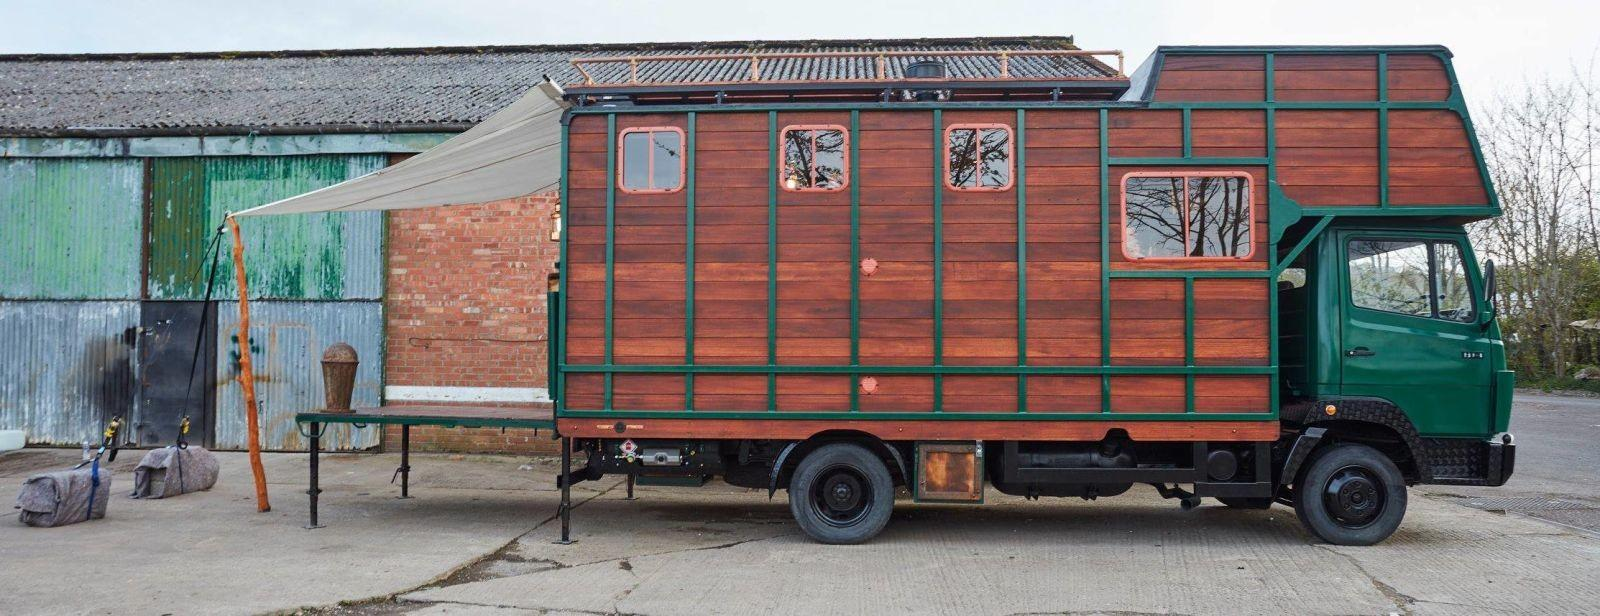 Horse Truck Completely Transformed Into